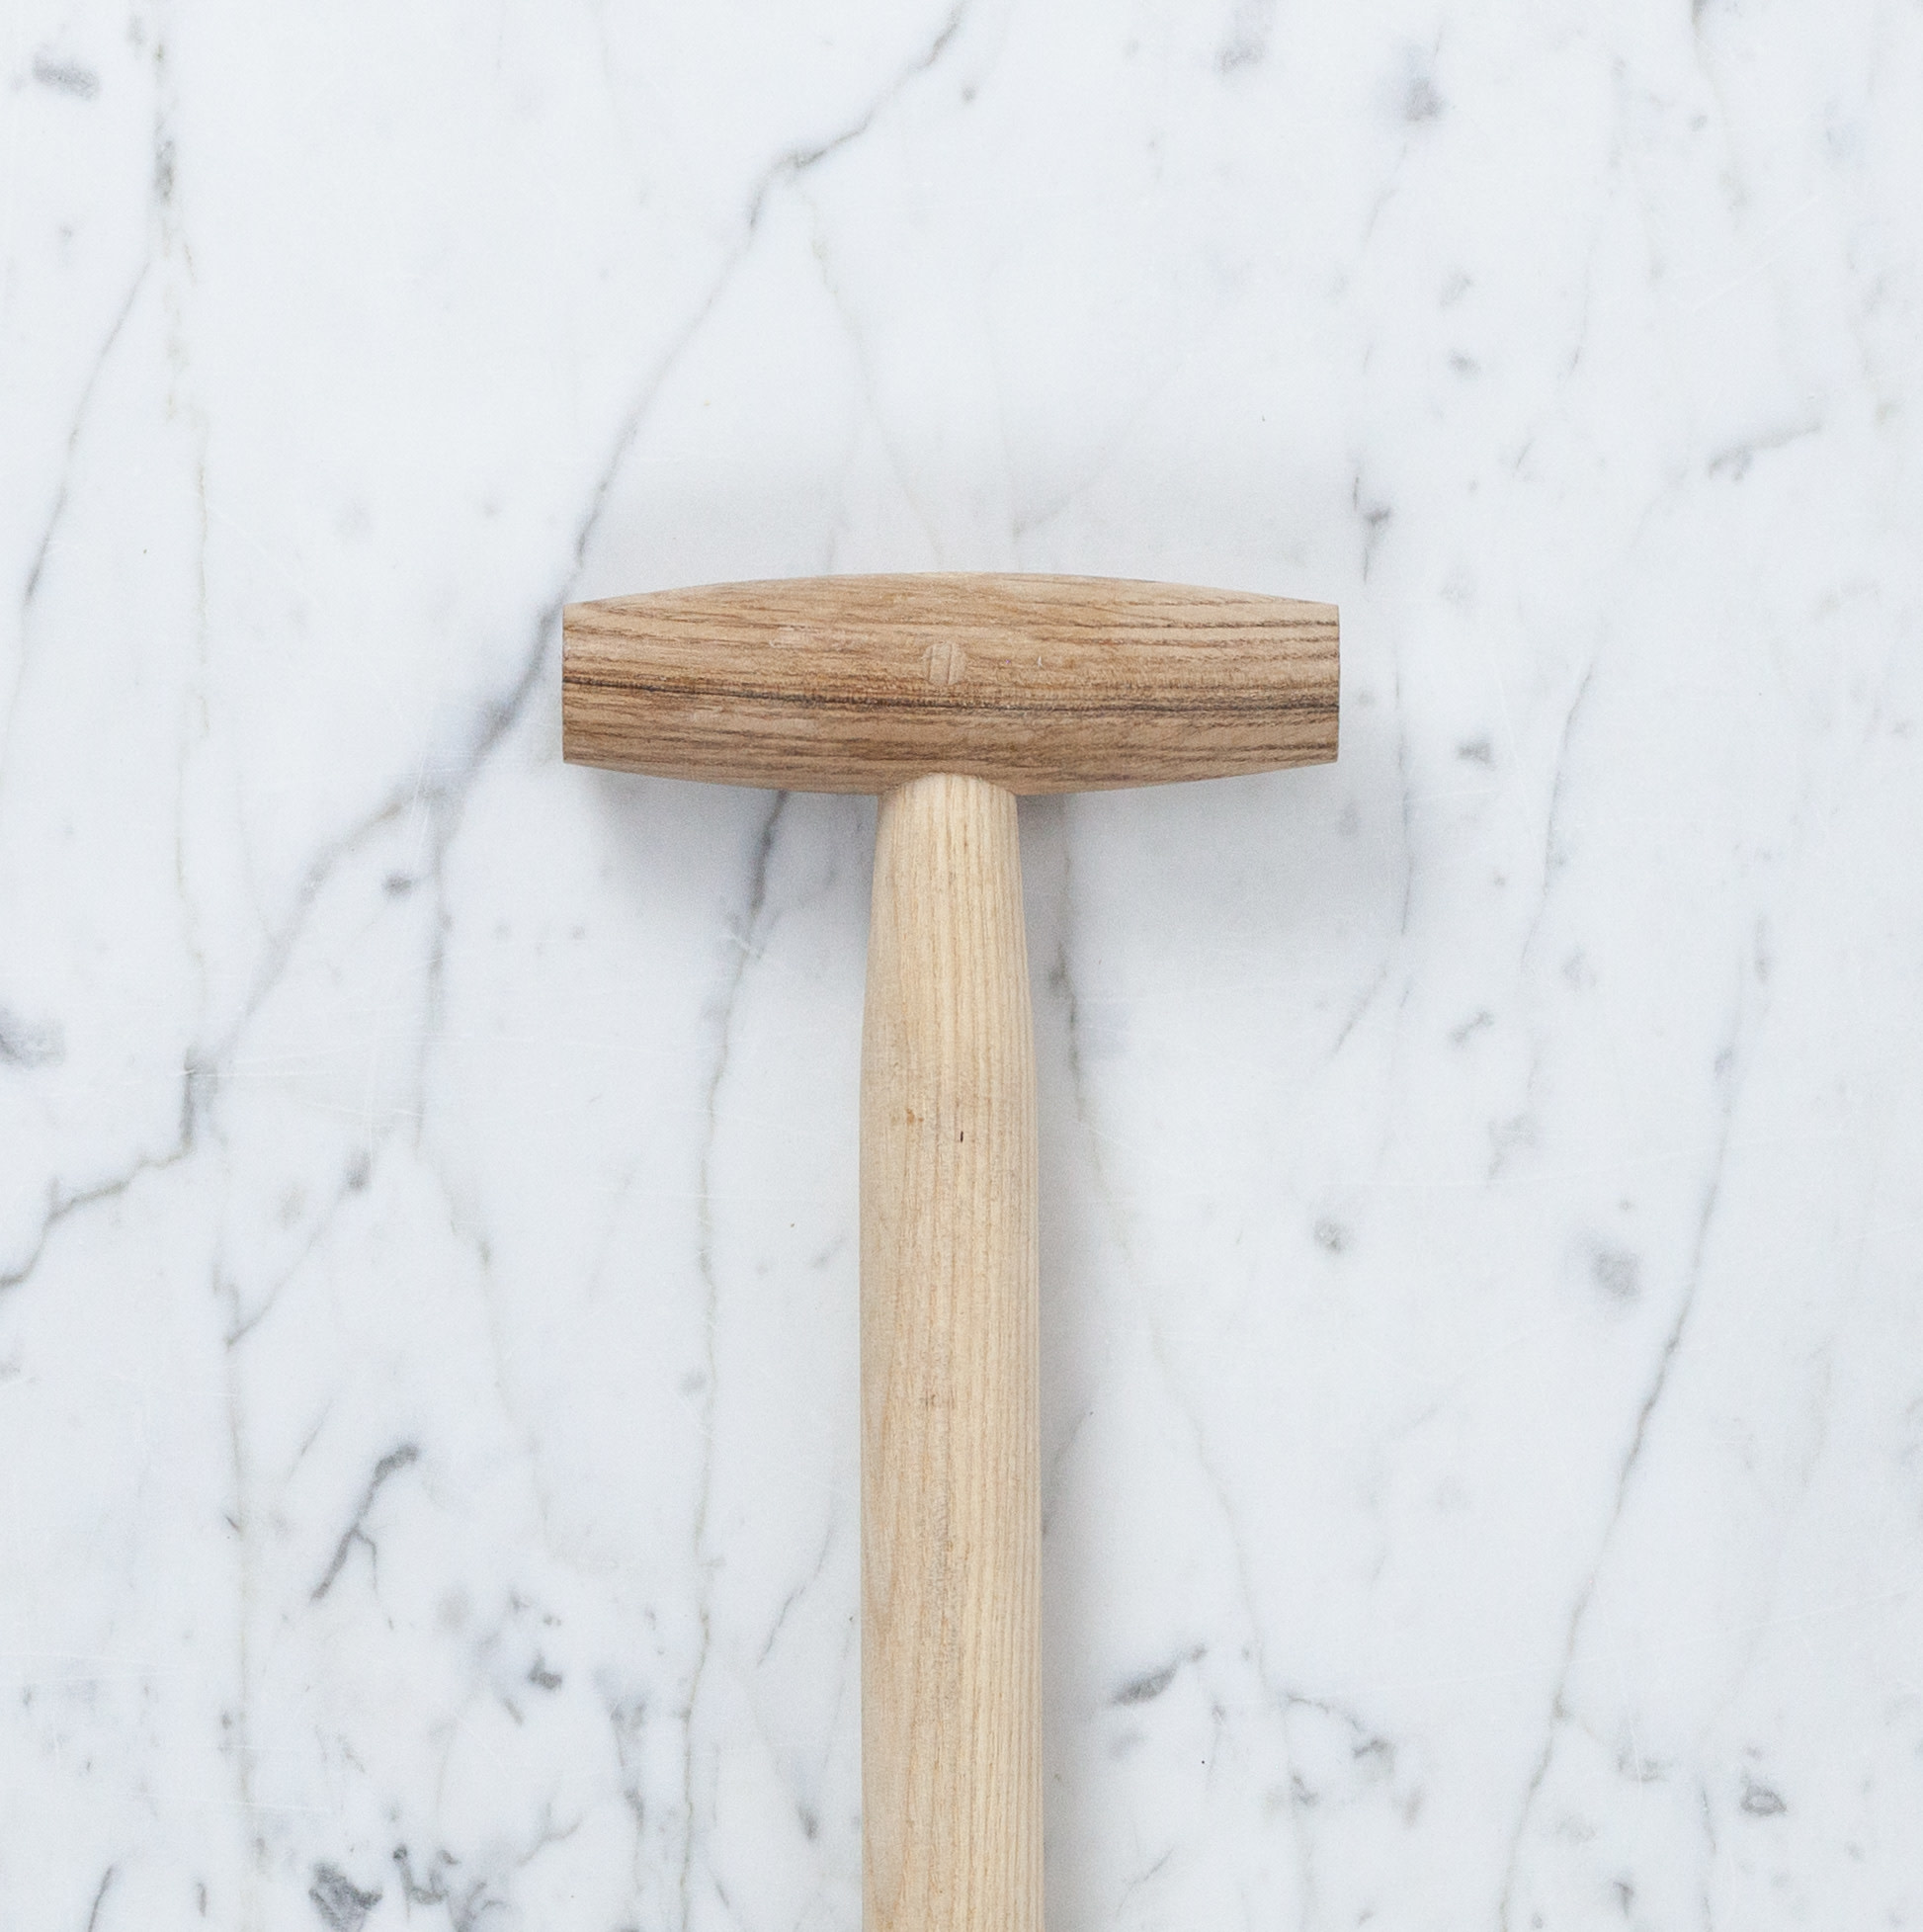 Sneeboer Hand Forged Dutch Children's Garden Spade Shovel